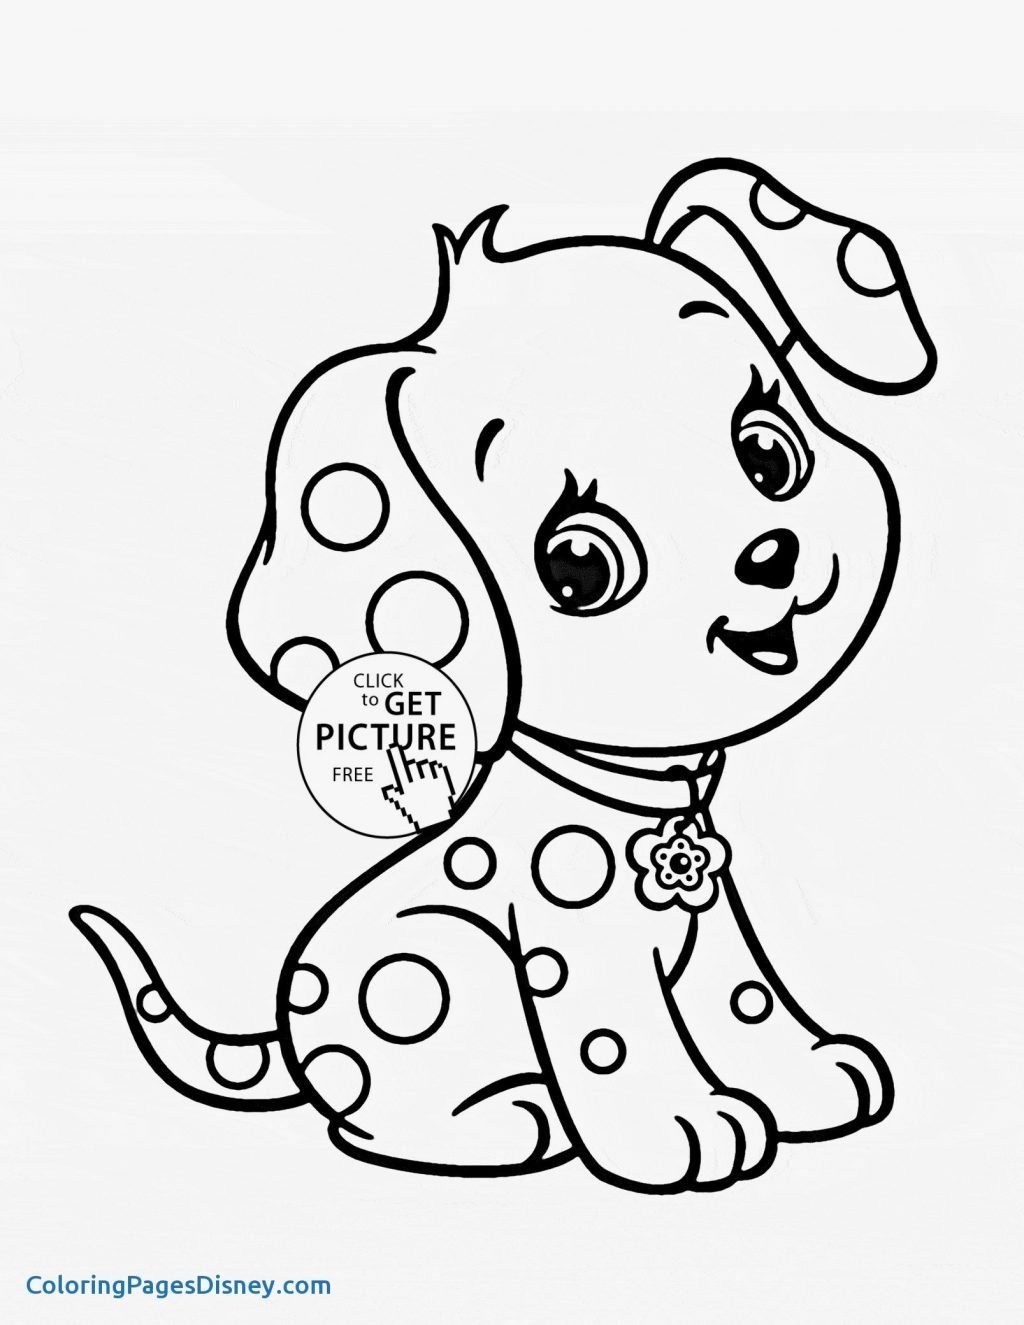 Coloring Pages ~ Simple Disney Coloring Pages Printablearvelous - Free Printable Disney Valentine Coloring Pages